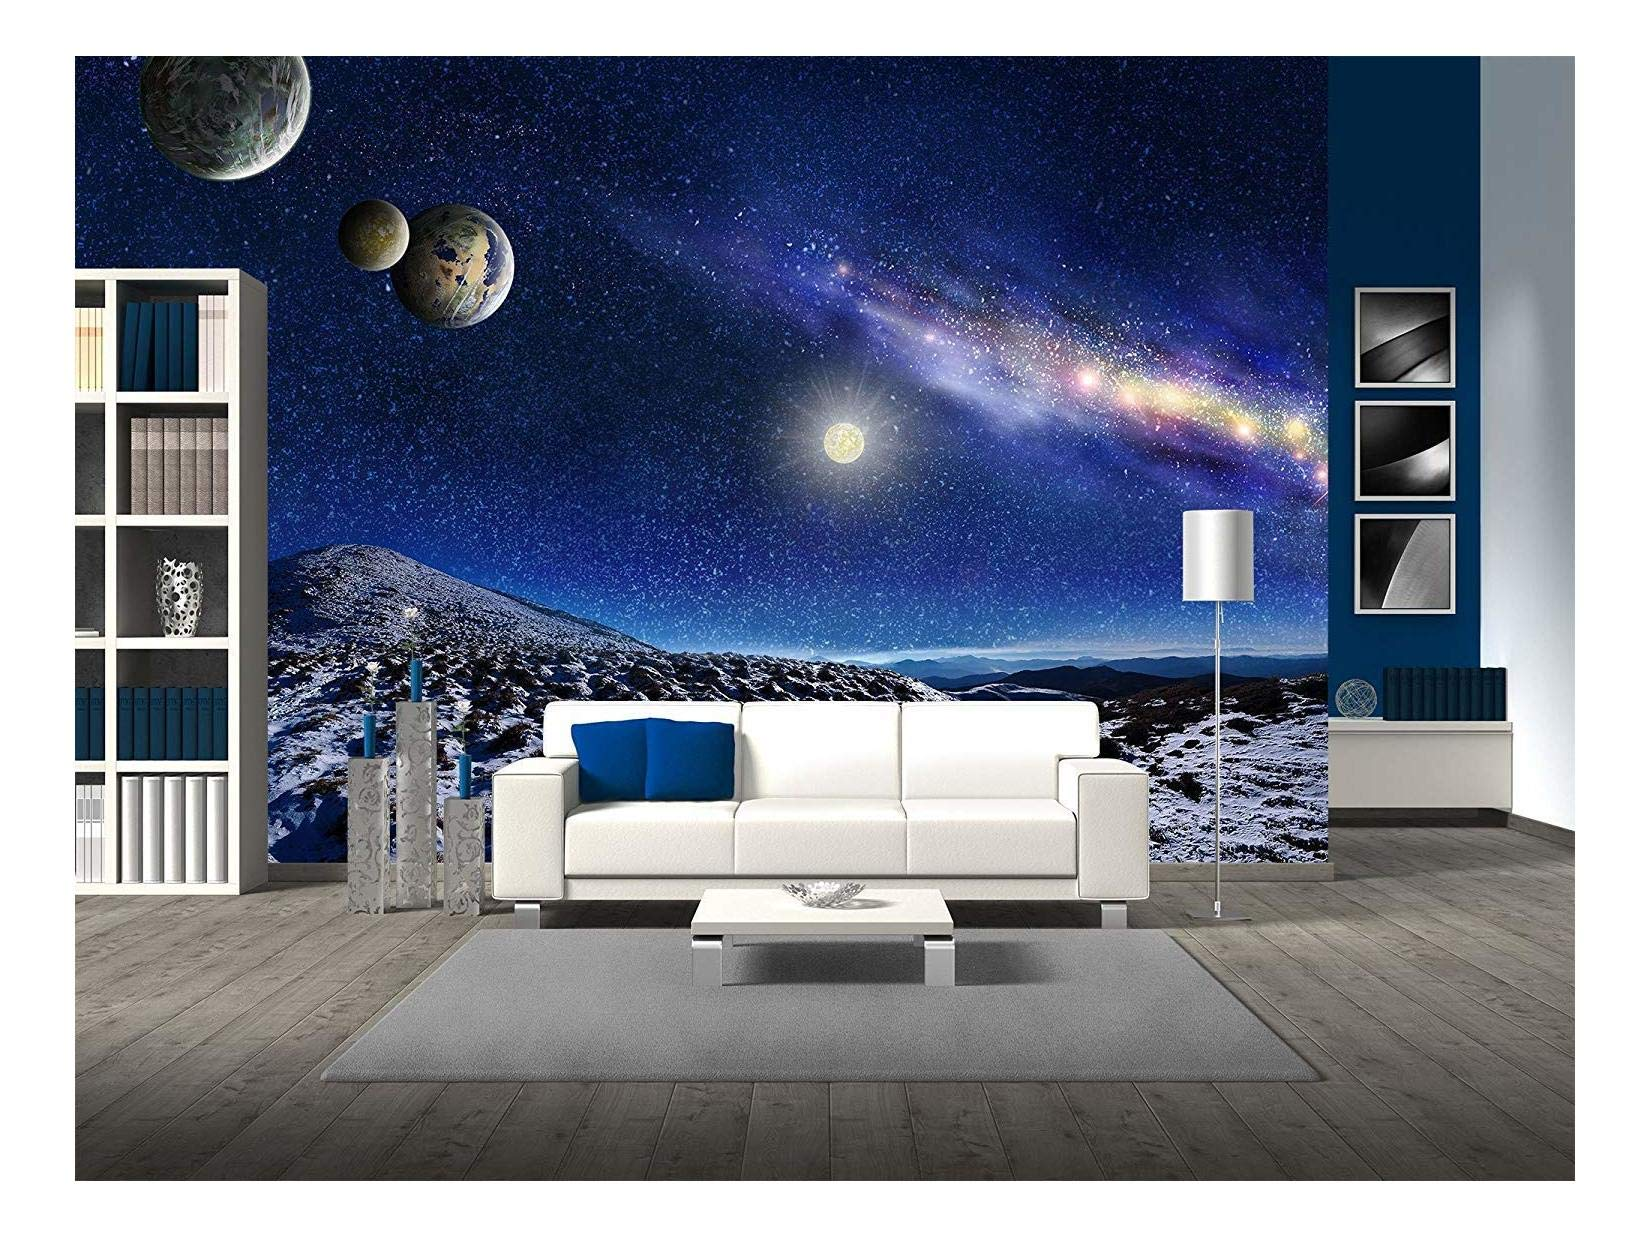 wall26 - Night Space Landscape. Milky Way Galaxy and Planets Over Mountains - Removable Wall Mural | Self-Adhesive Large Wallpaper - 100x144 inches by wall26 (Image #1)